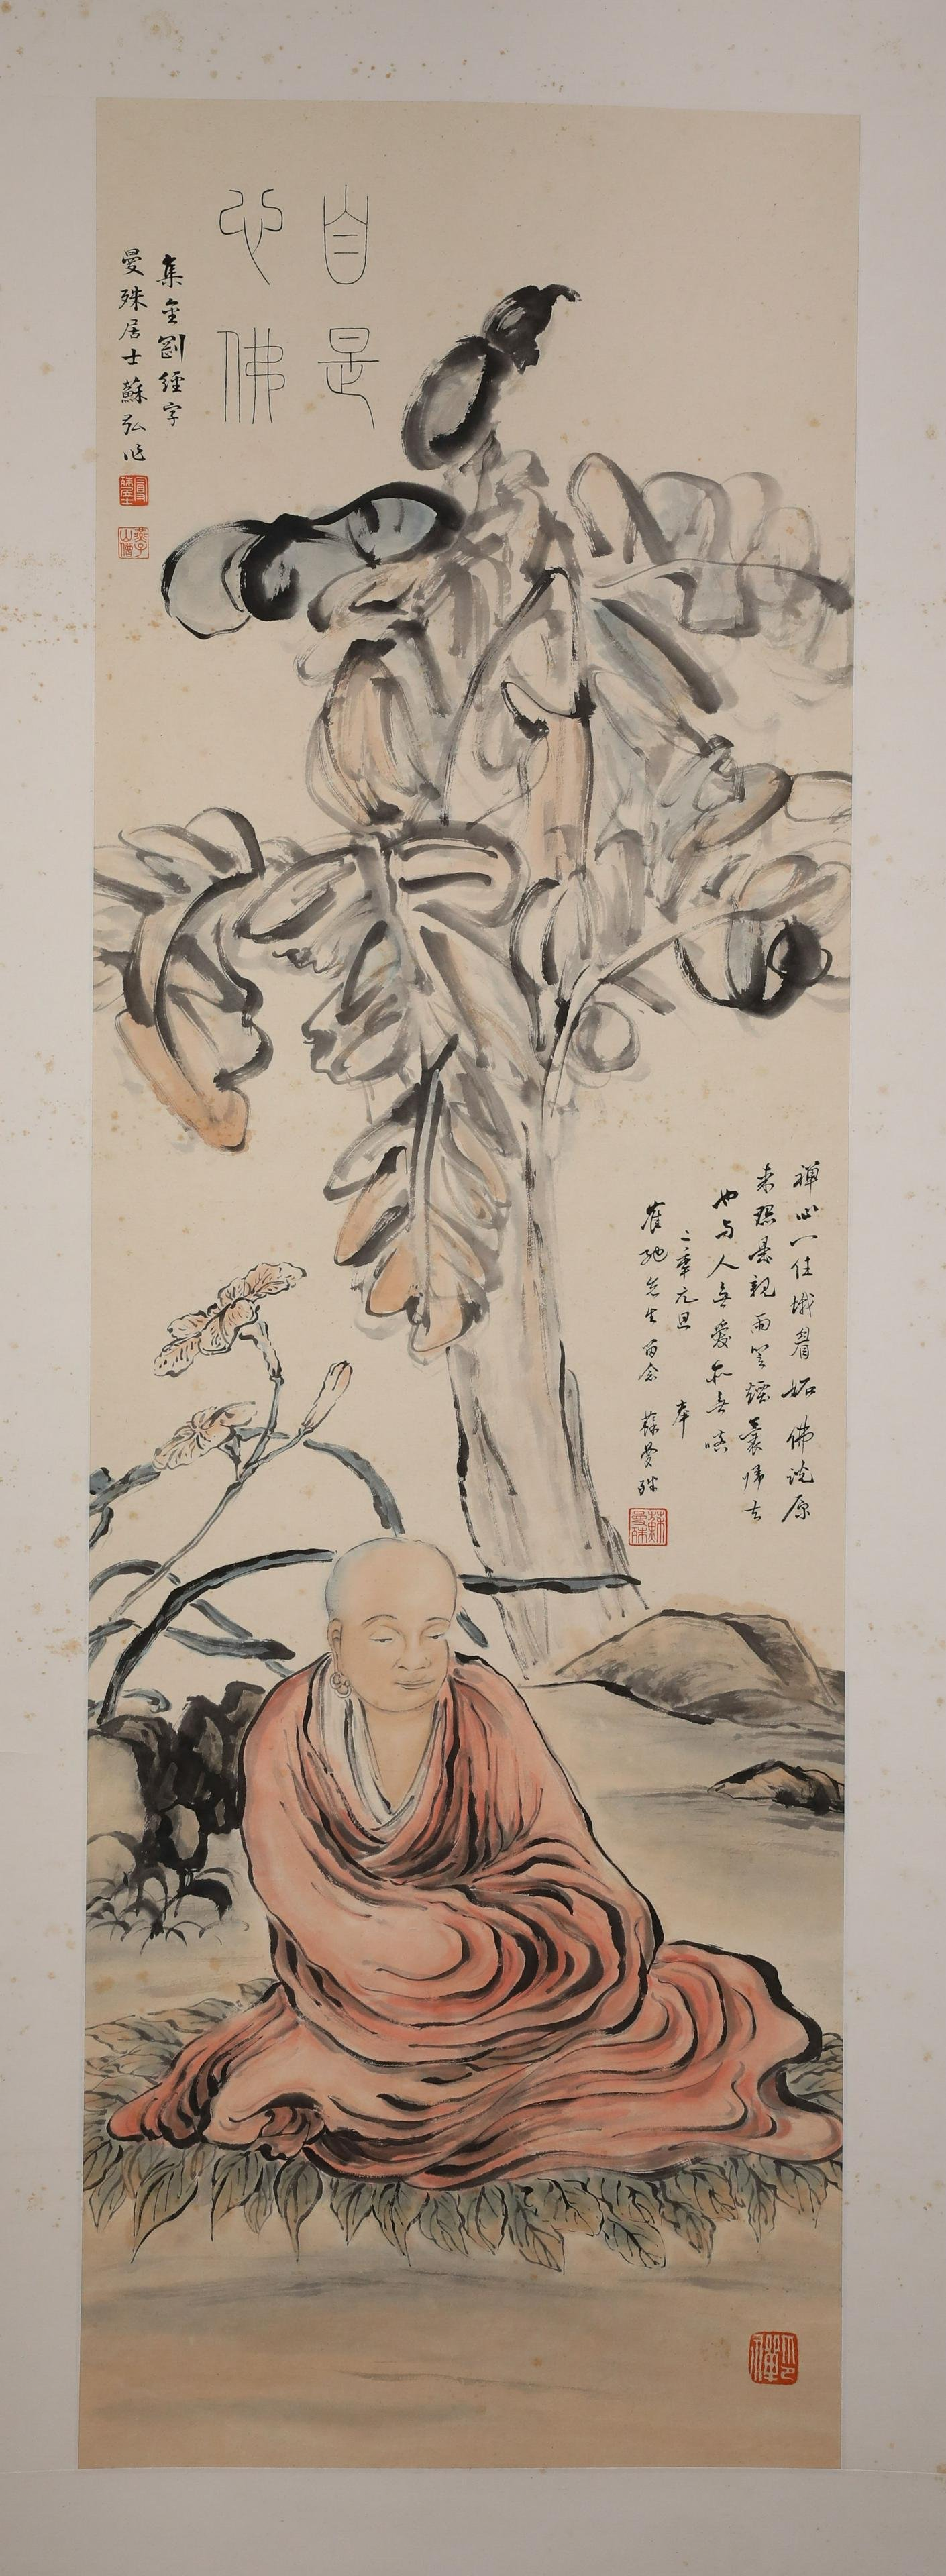 A Fine Chinese Hand-drawn Painting  Signed By Su Manshu